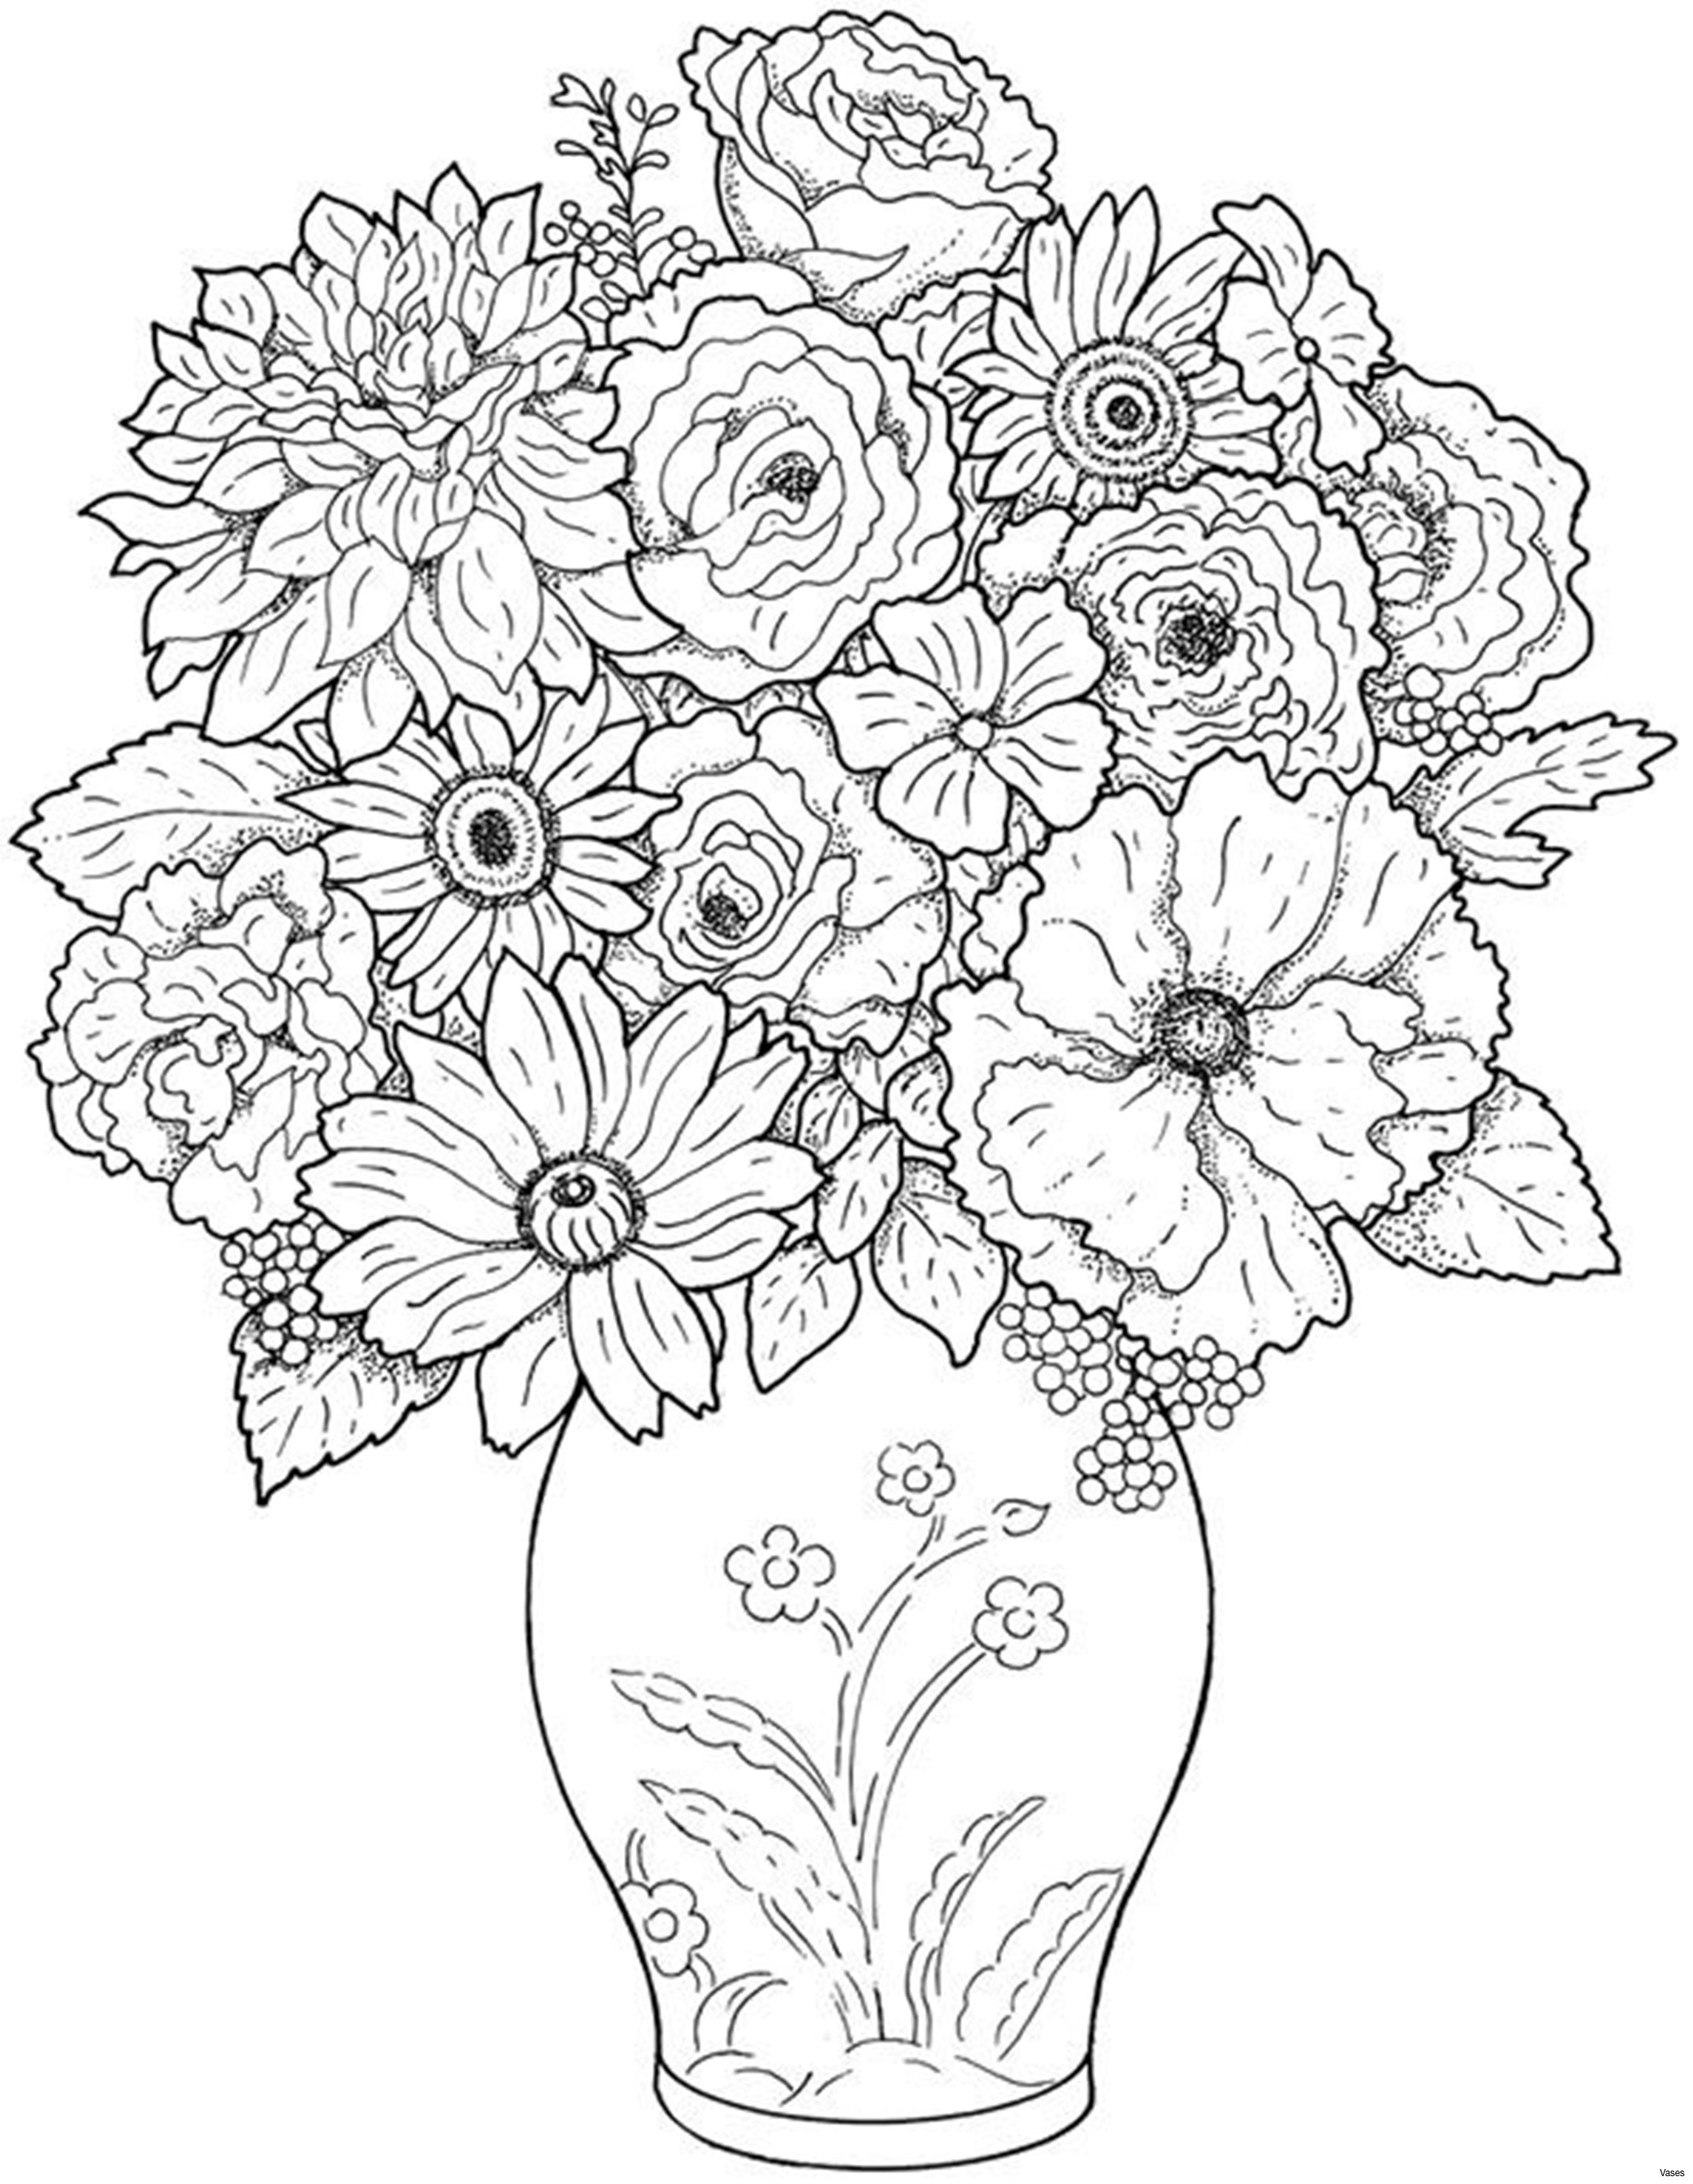 Cheap Large Vases Of Cool Vases Flower Vase Coloring Page Pages Flowers In A top I 0d Ruva Pertaining to Cool Vases Flower Vase Coloring Page Pages Flowers In A top I 0d